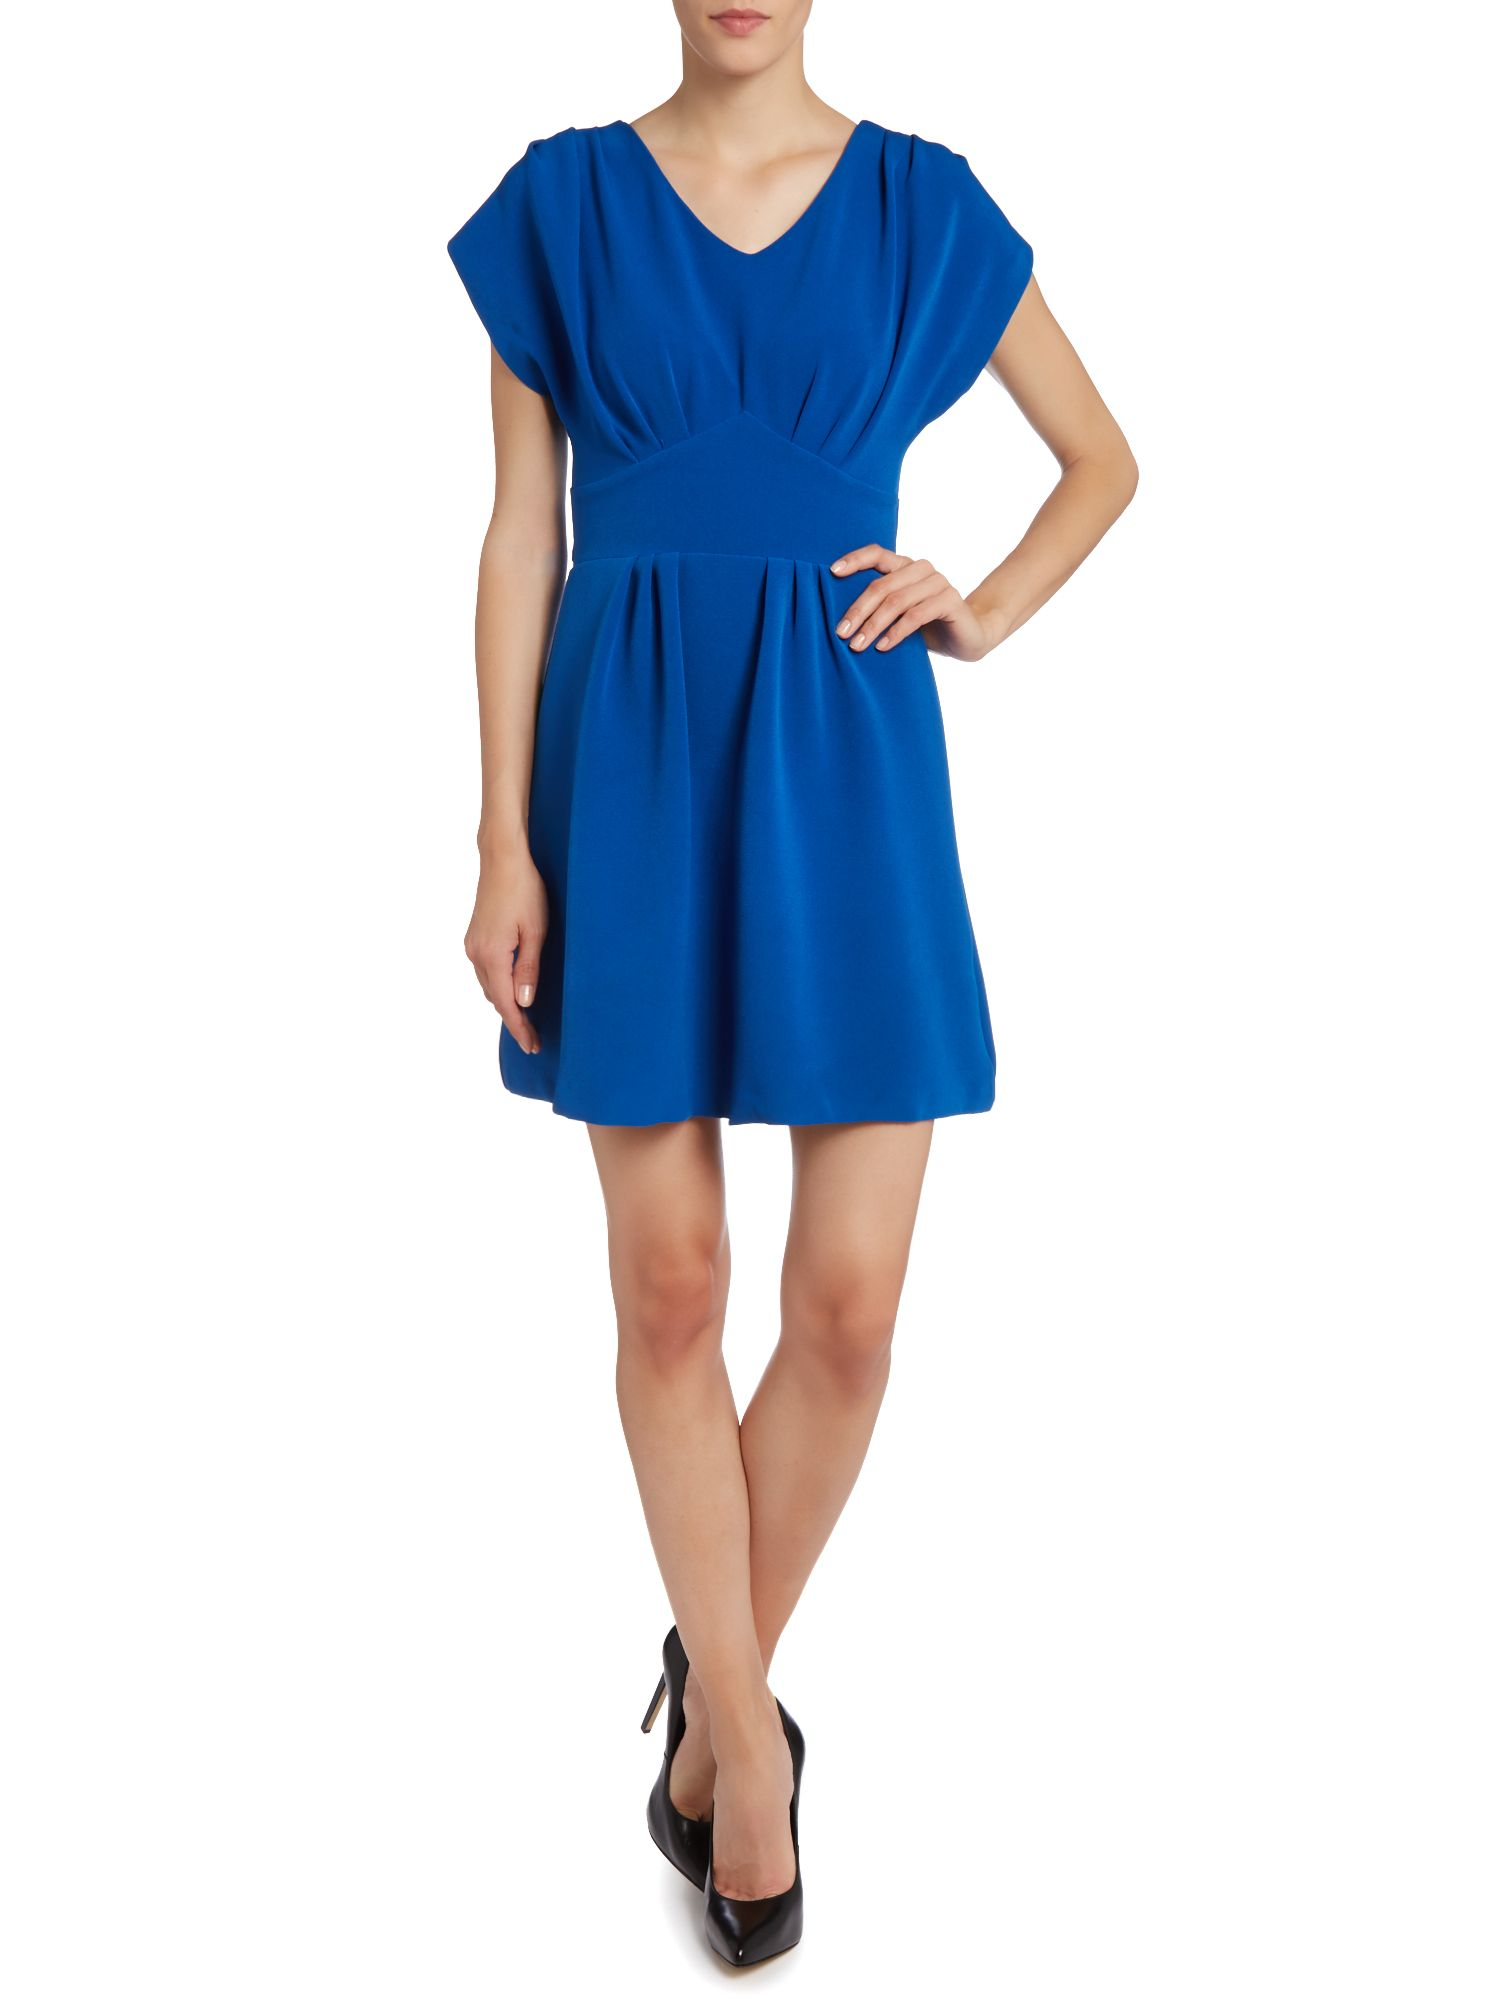 Pleat v neck tie back dress